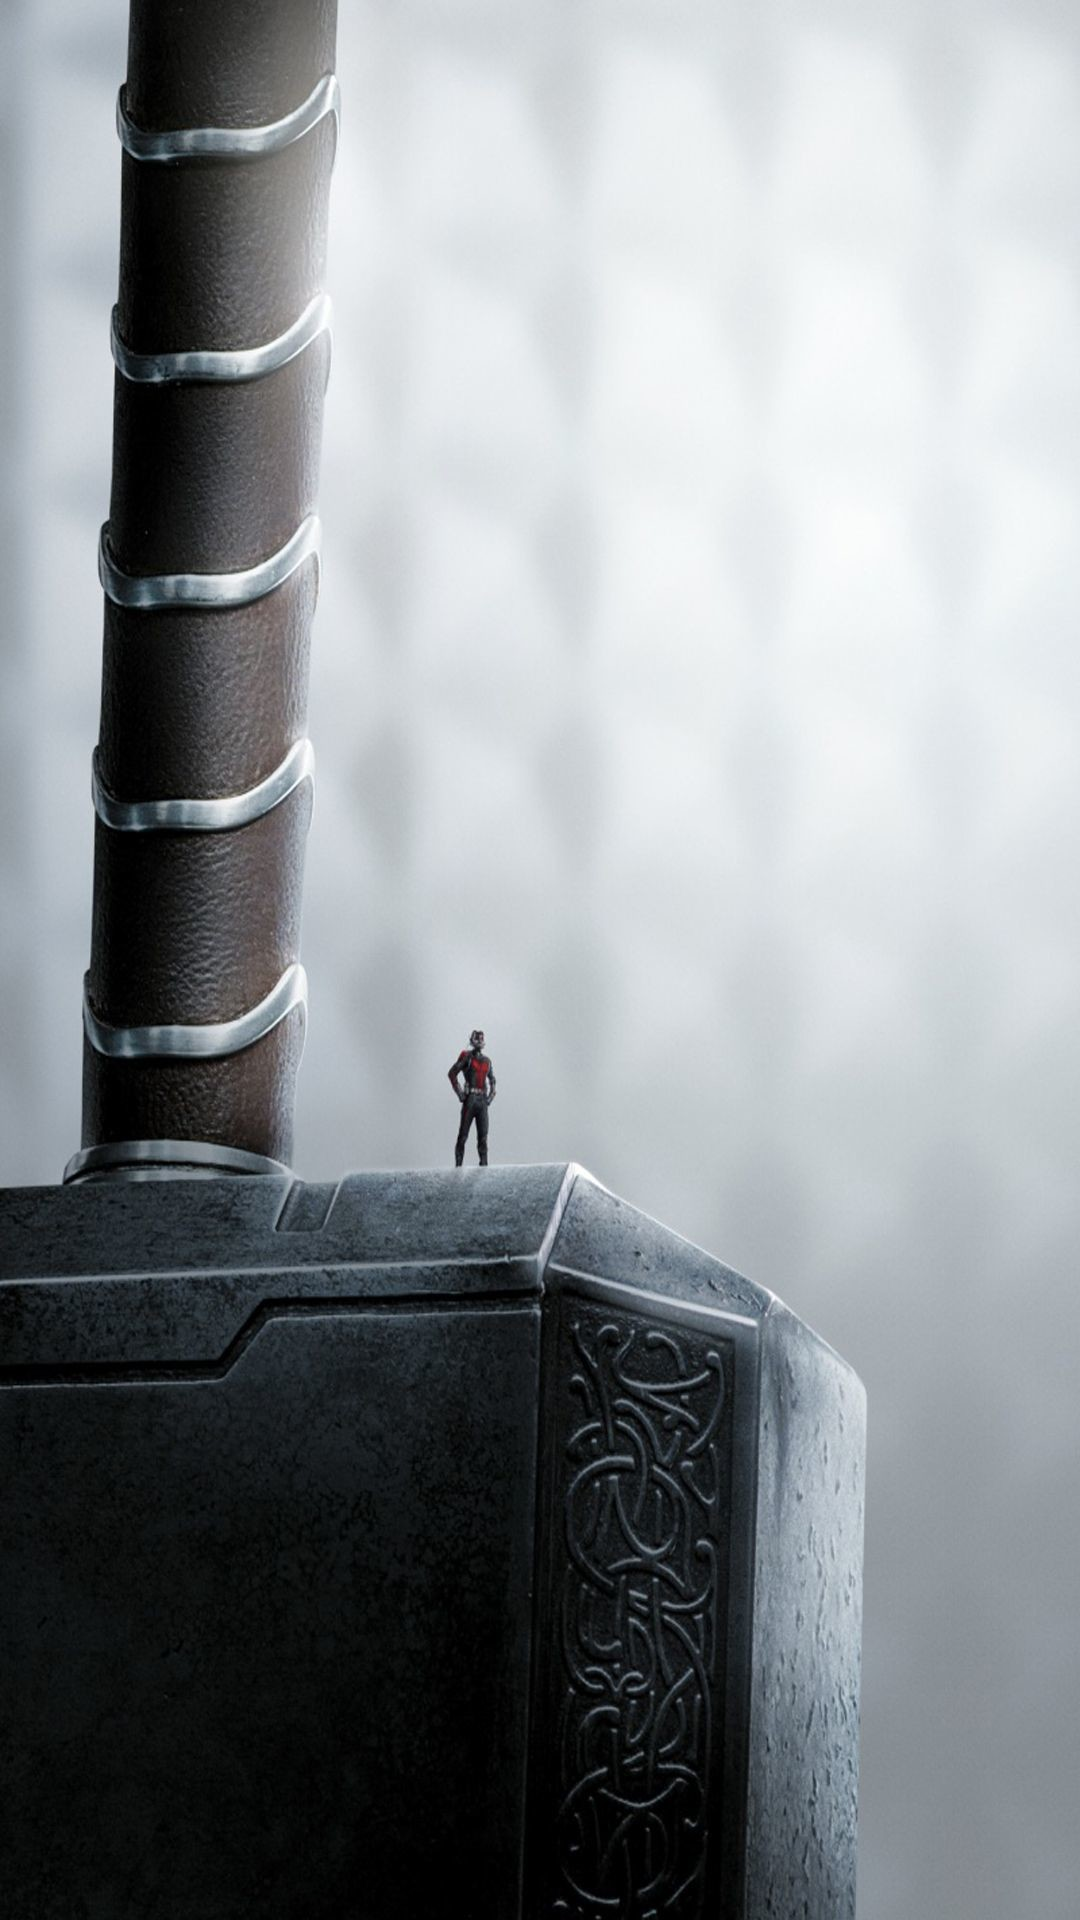 Res: 1080x1920, Art Creative Ant Man Movie Cinema Superhero Hammer Tor HD iPhone 6 Plus  Wallpaper